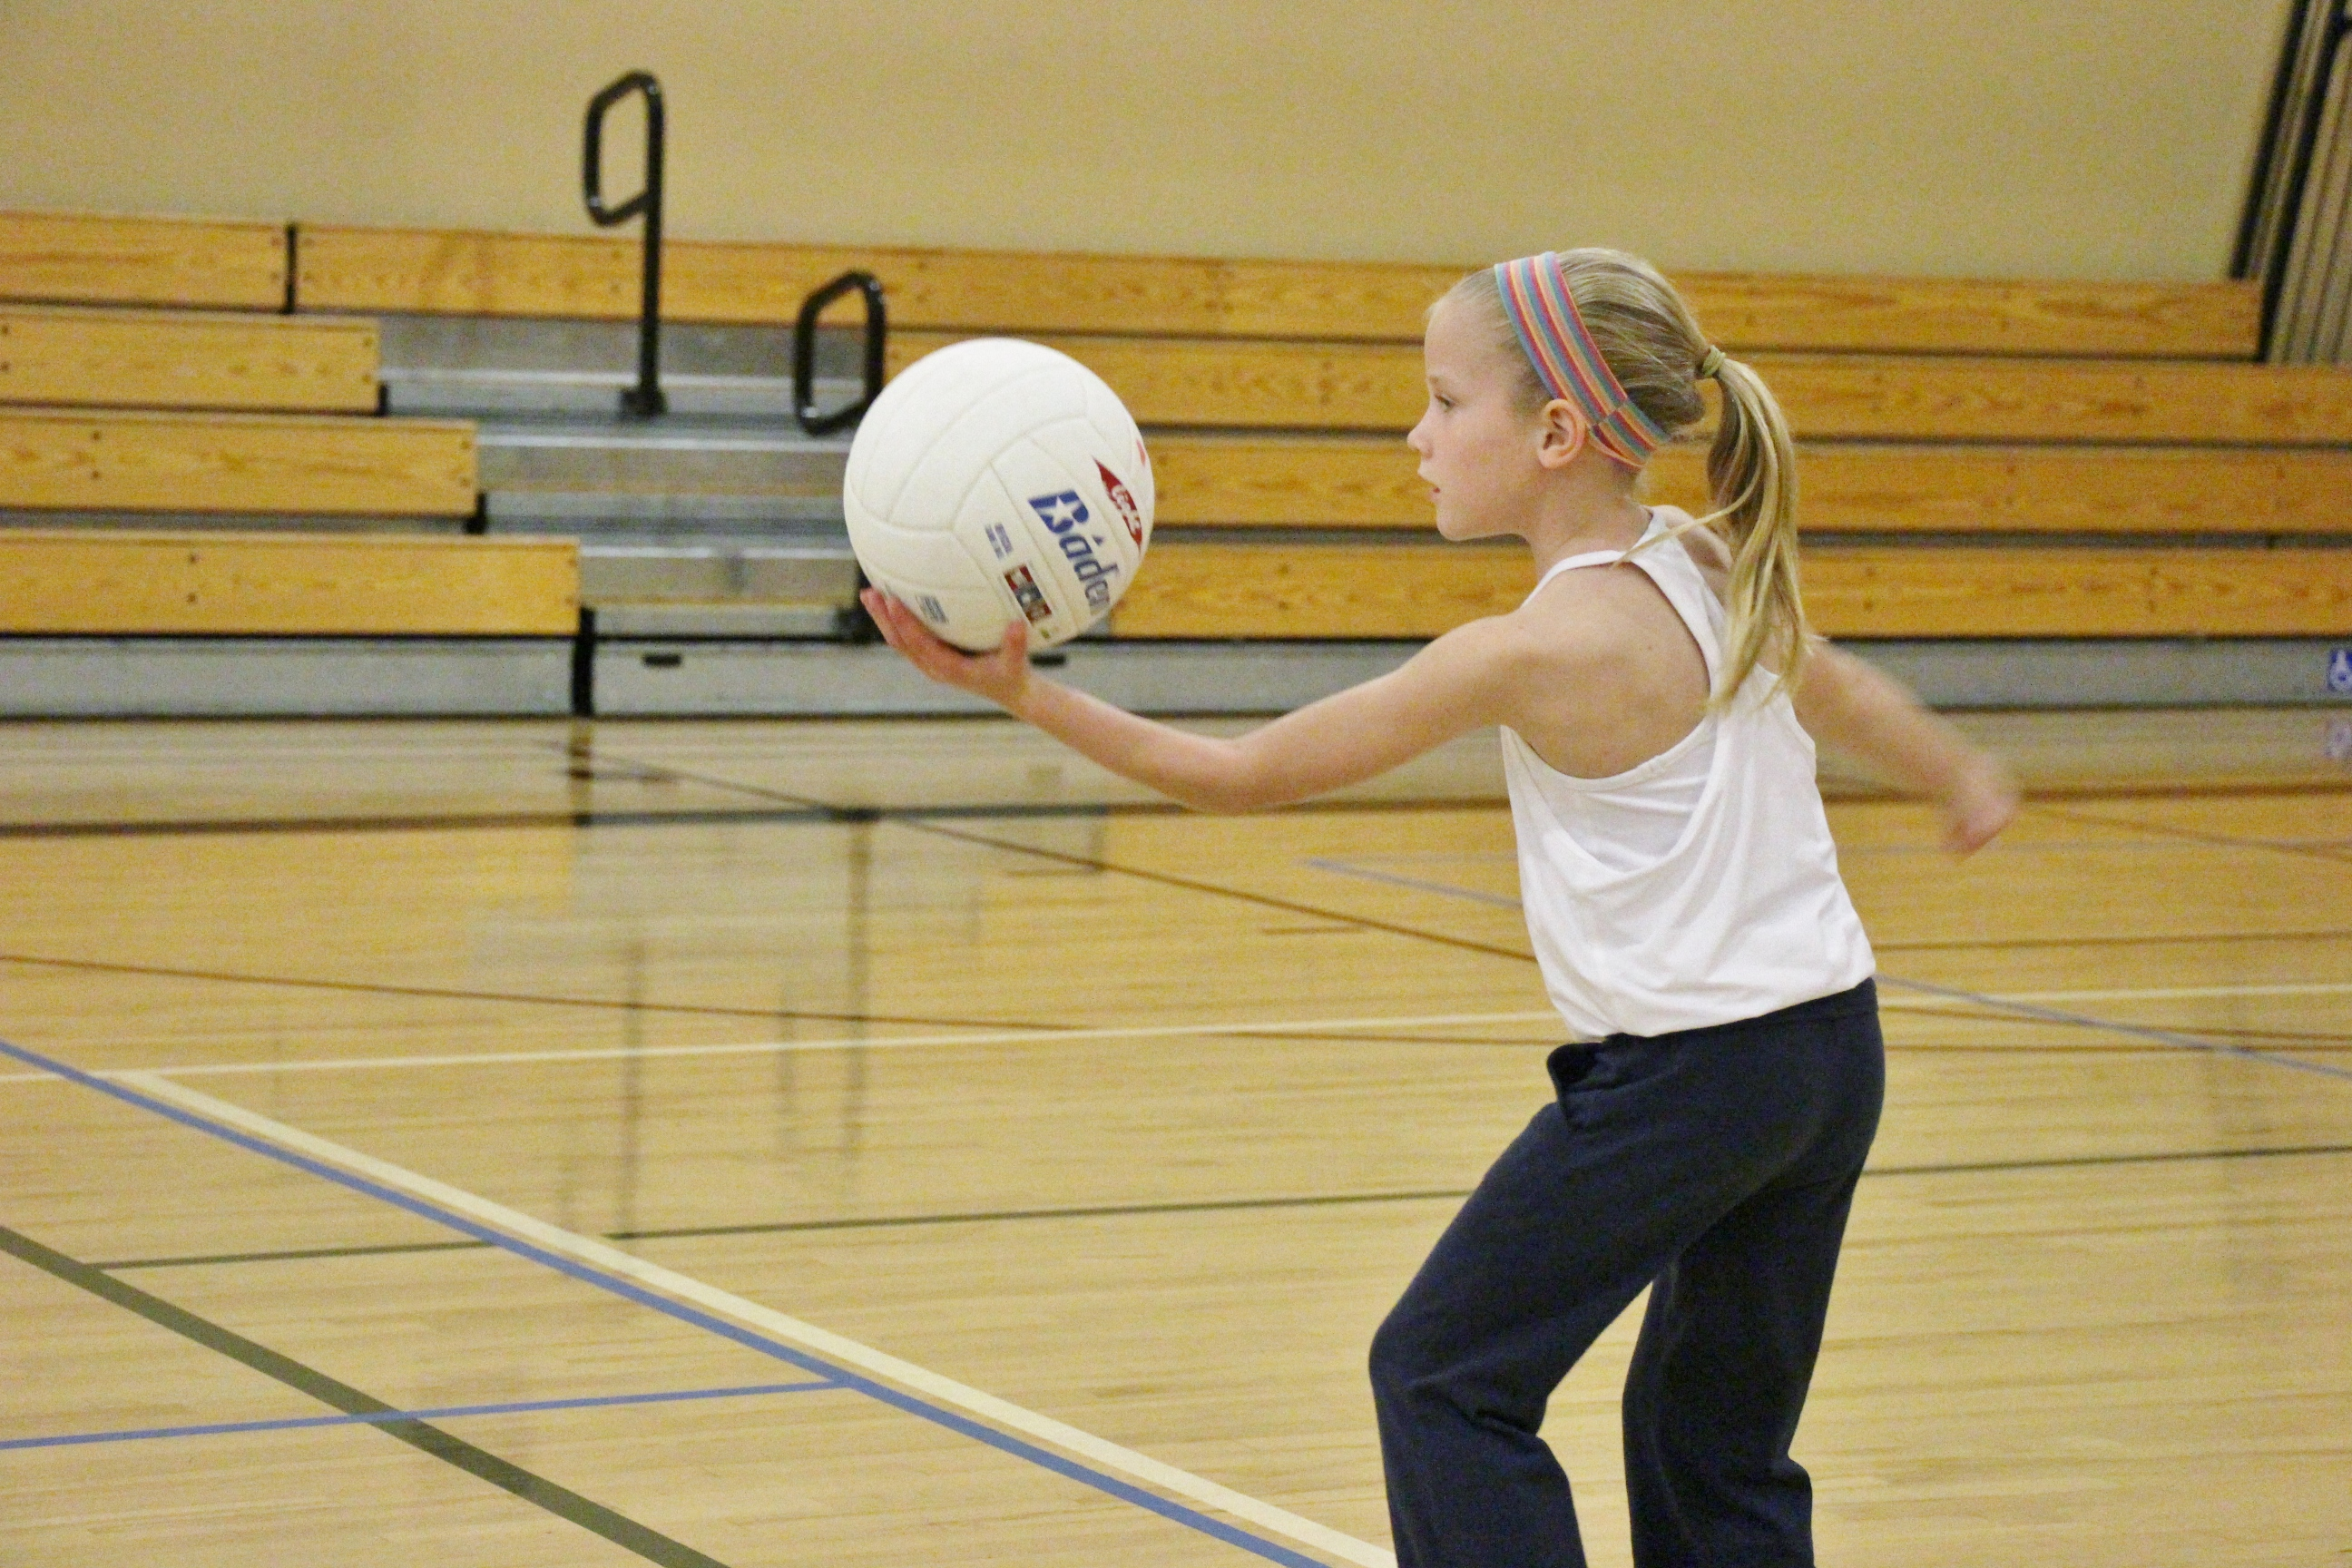 Newport Coast Indoor Clinic Serving